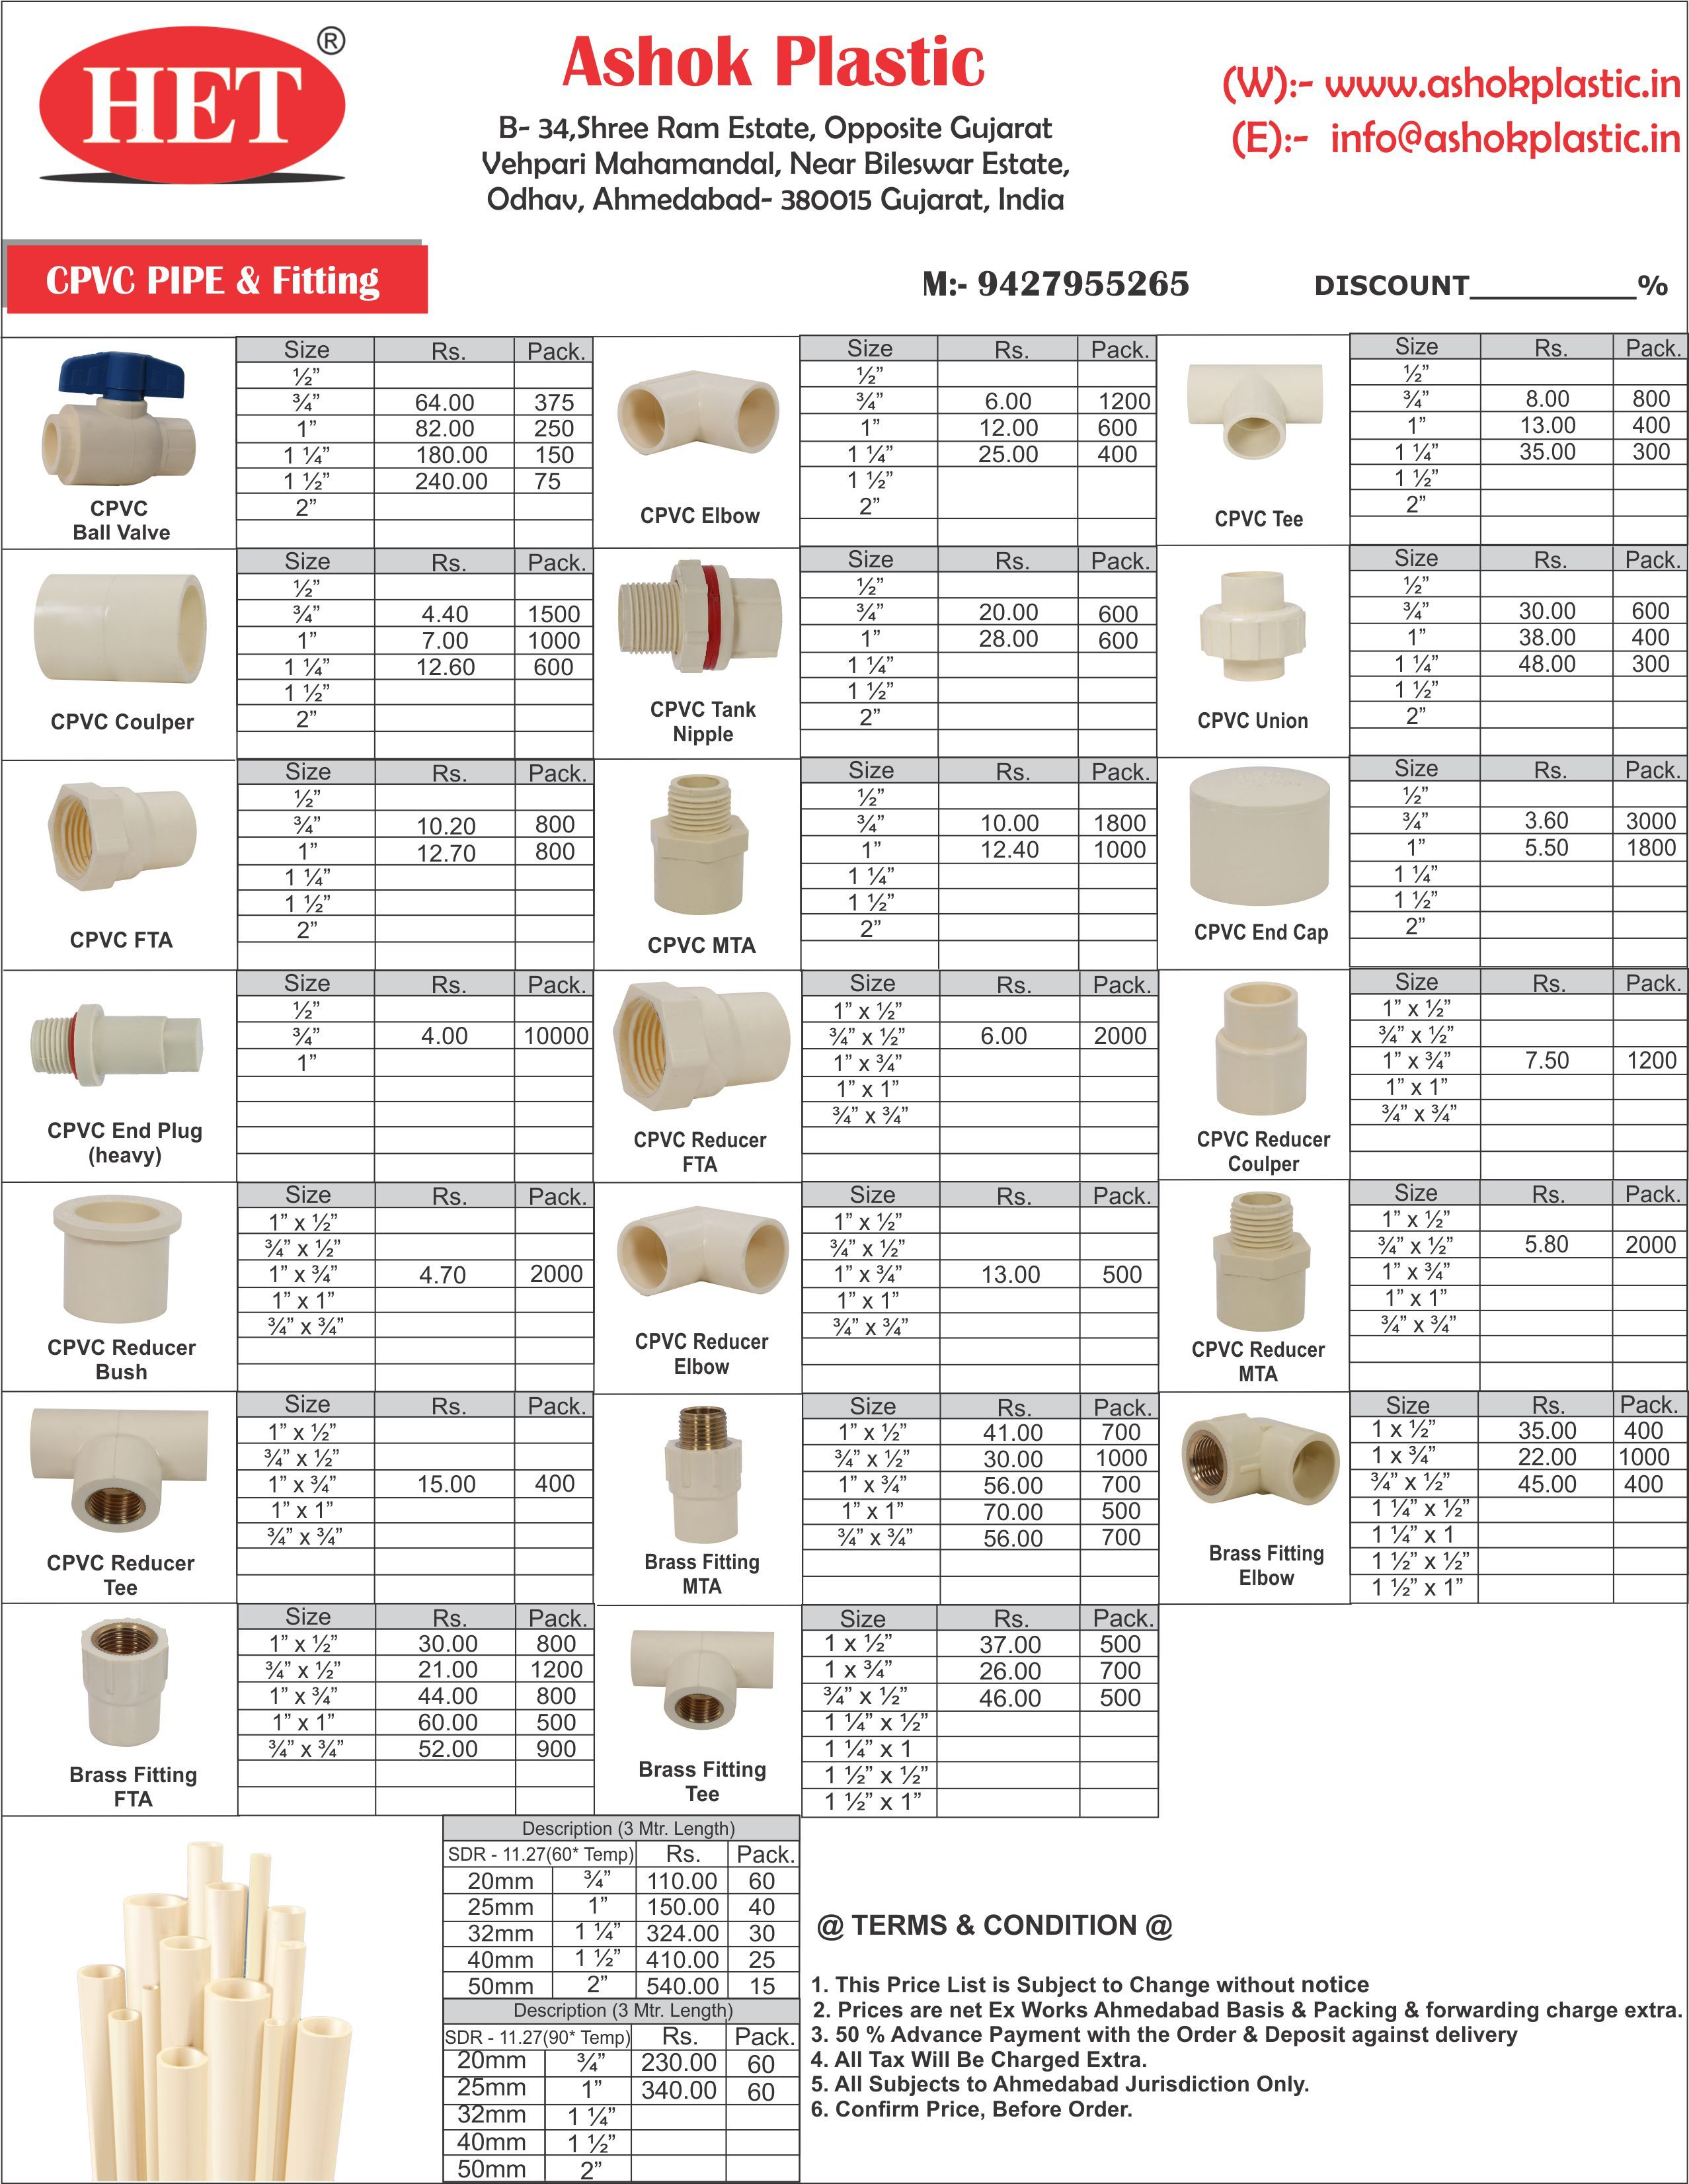 hight resolution of cpvc pipe fittings price list ashok plastic